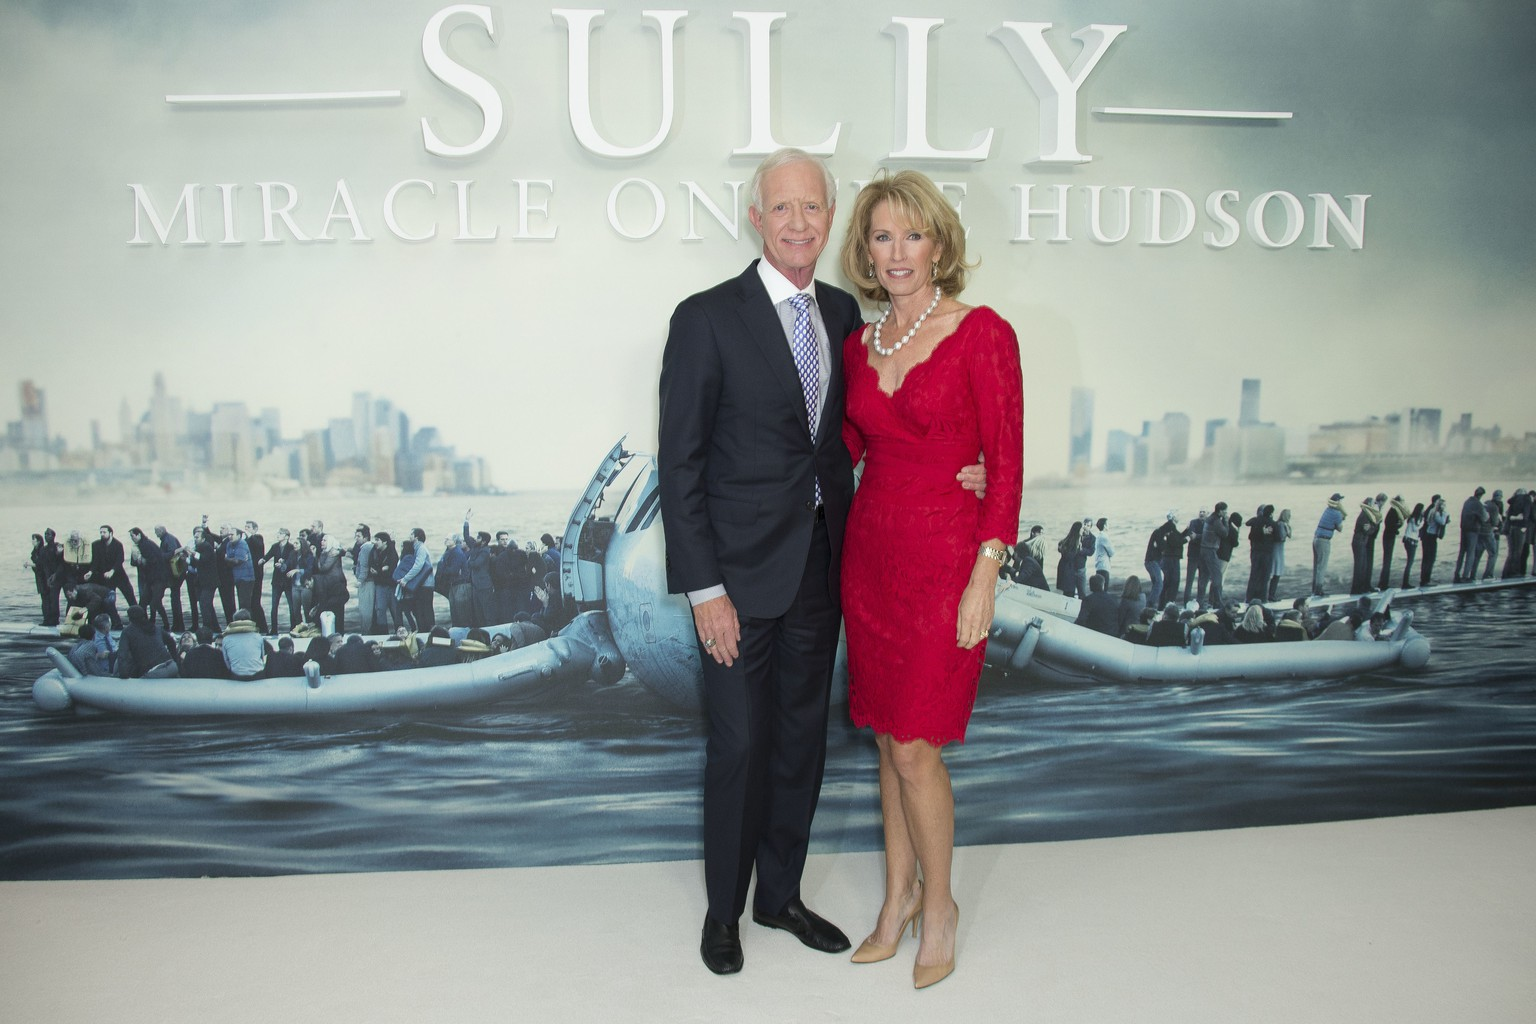 Retired airline pilot Captain Chesley Sullenberger and wife Lorraine Sullenberger, pose for photographers upon arrival at a special screening of the film 'Sully- Miracle on the Hudson' in London, Thursday, Nov. 17, 2016. (Photo by Joel Ryan/Invision/AP)